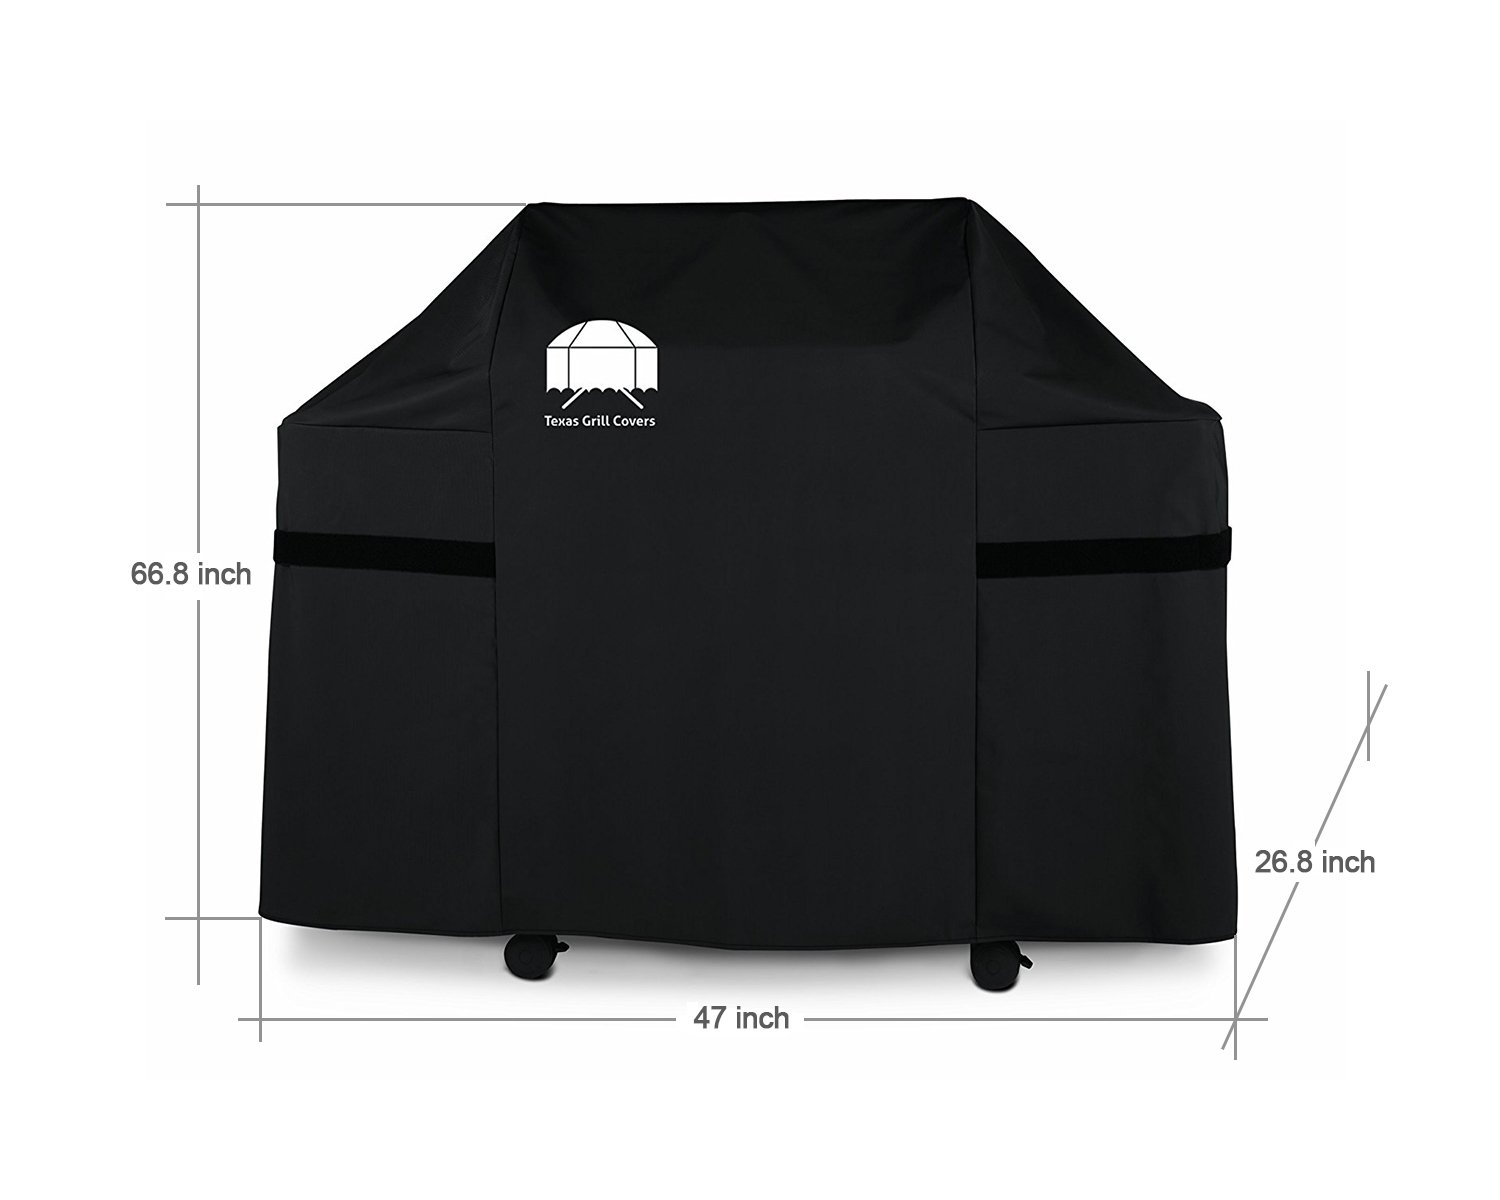 Texas Grill Covers 7554 | 7108 Premium Cover for Weber Grills by Texas Grill Covers